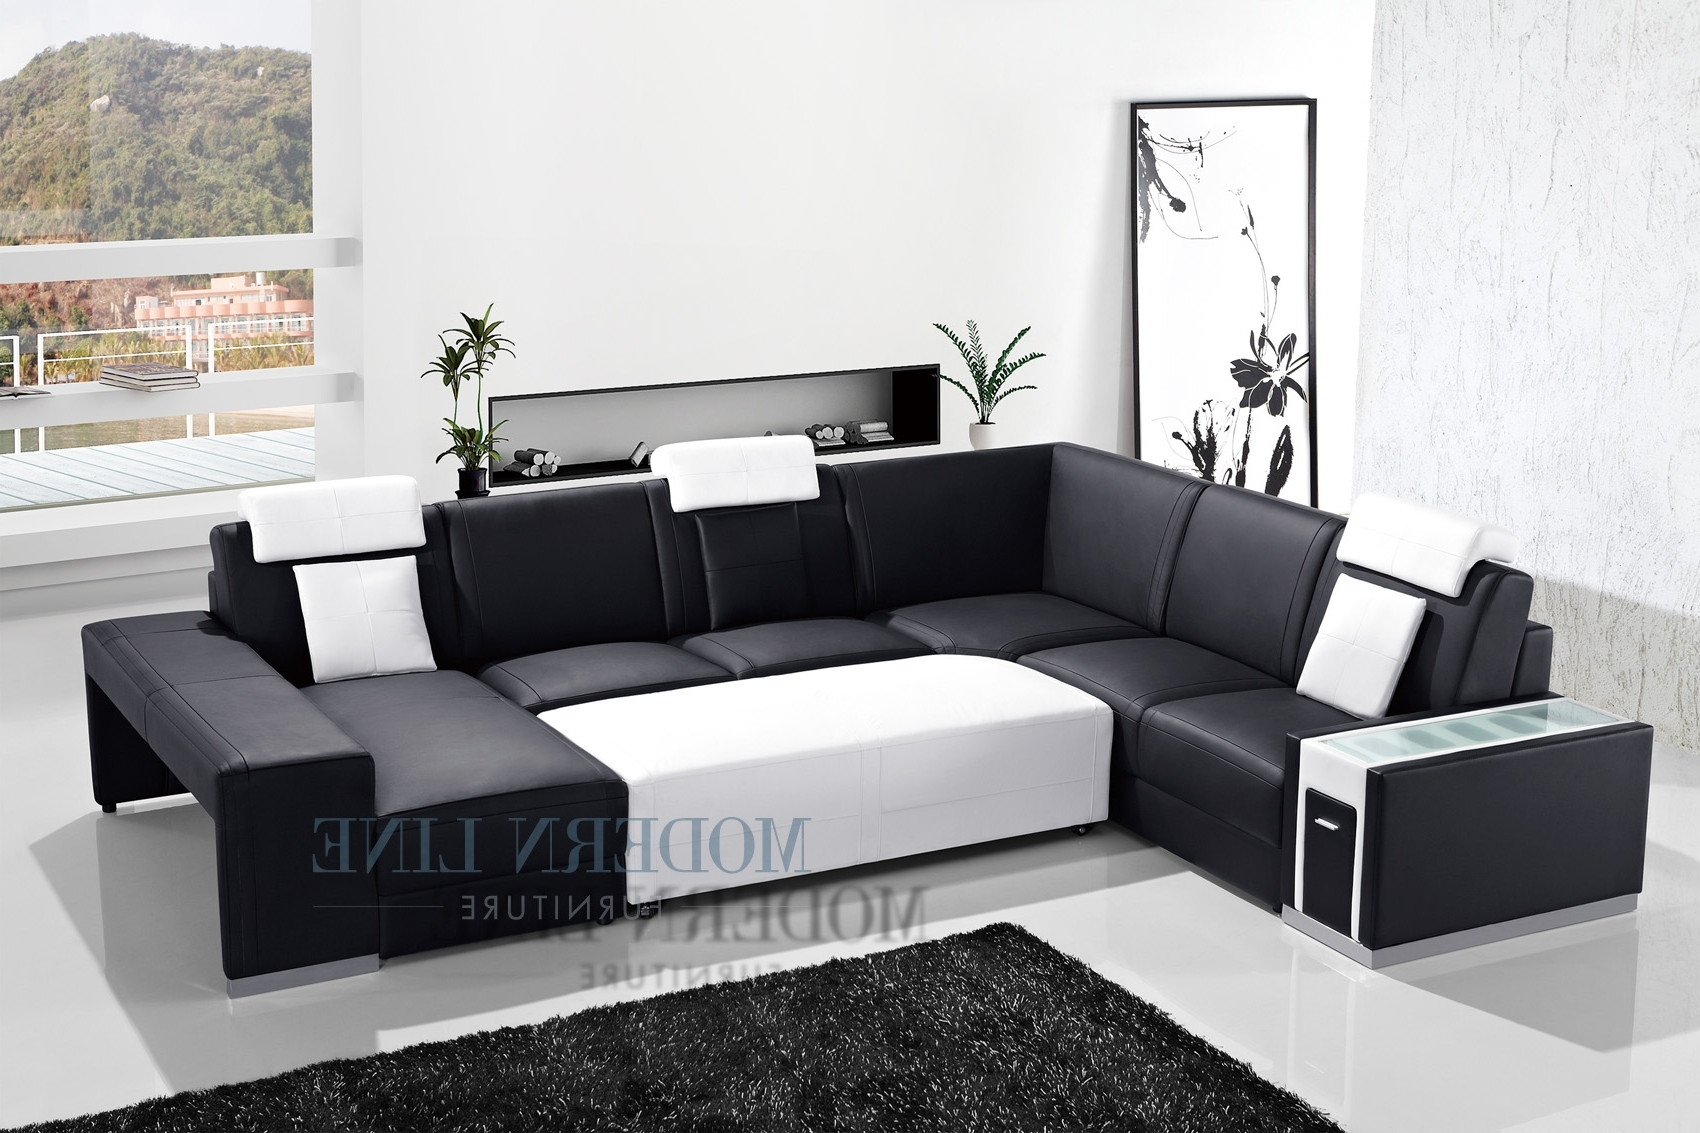 Most Current Black Leather Sectionals With Ottoman Pertaining To Awesome Black Leather Sectional With Ottoman Ideas – Liltigertoo (View 14 of 15)